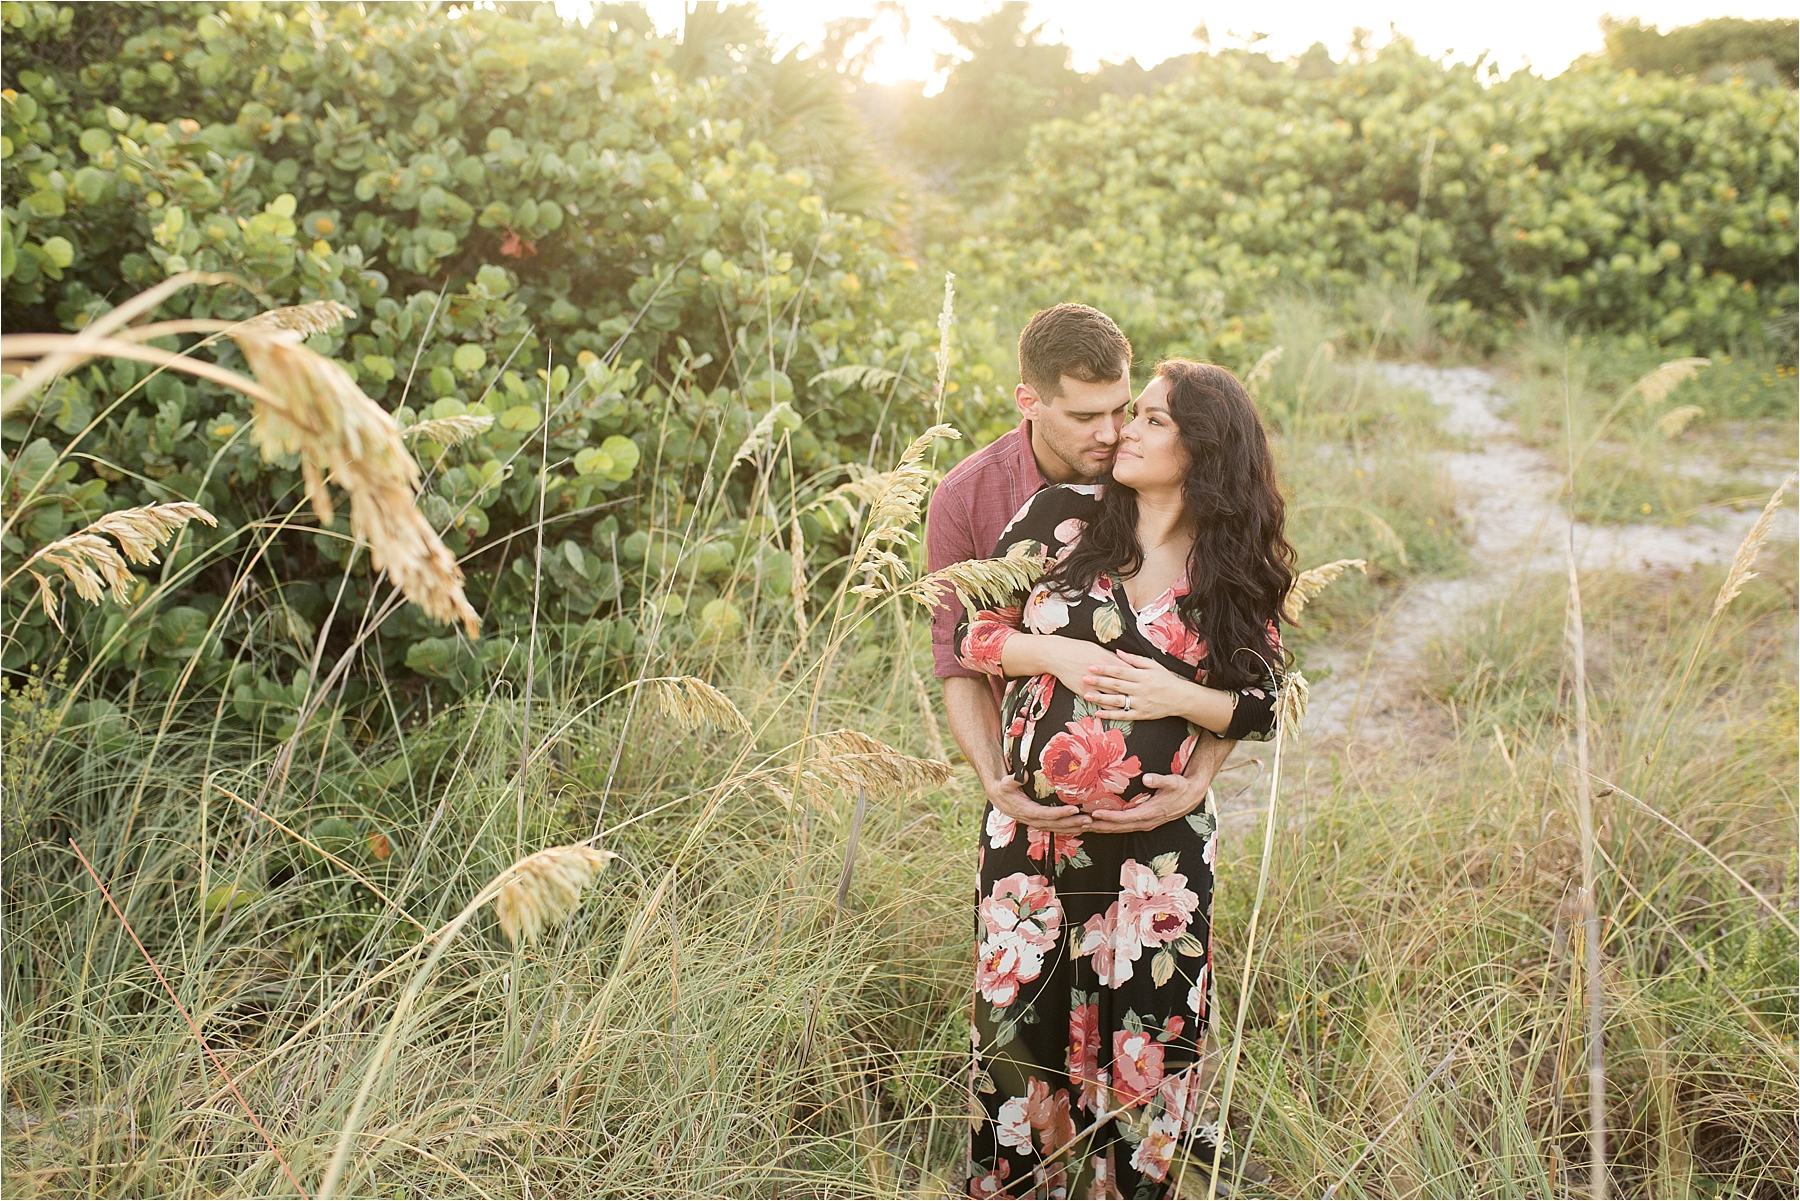 bill baggs beach miami maternity photography